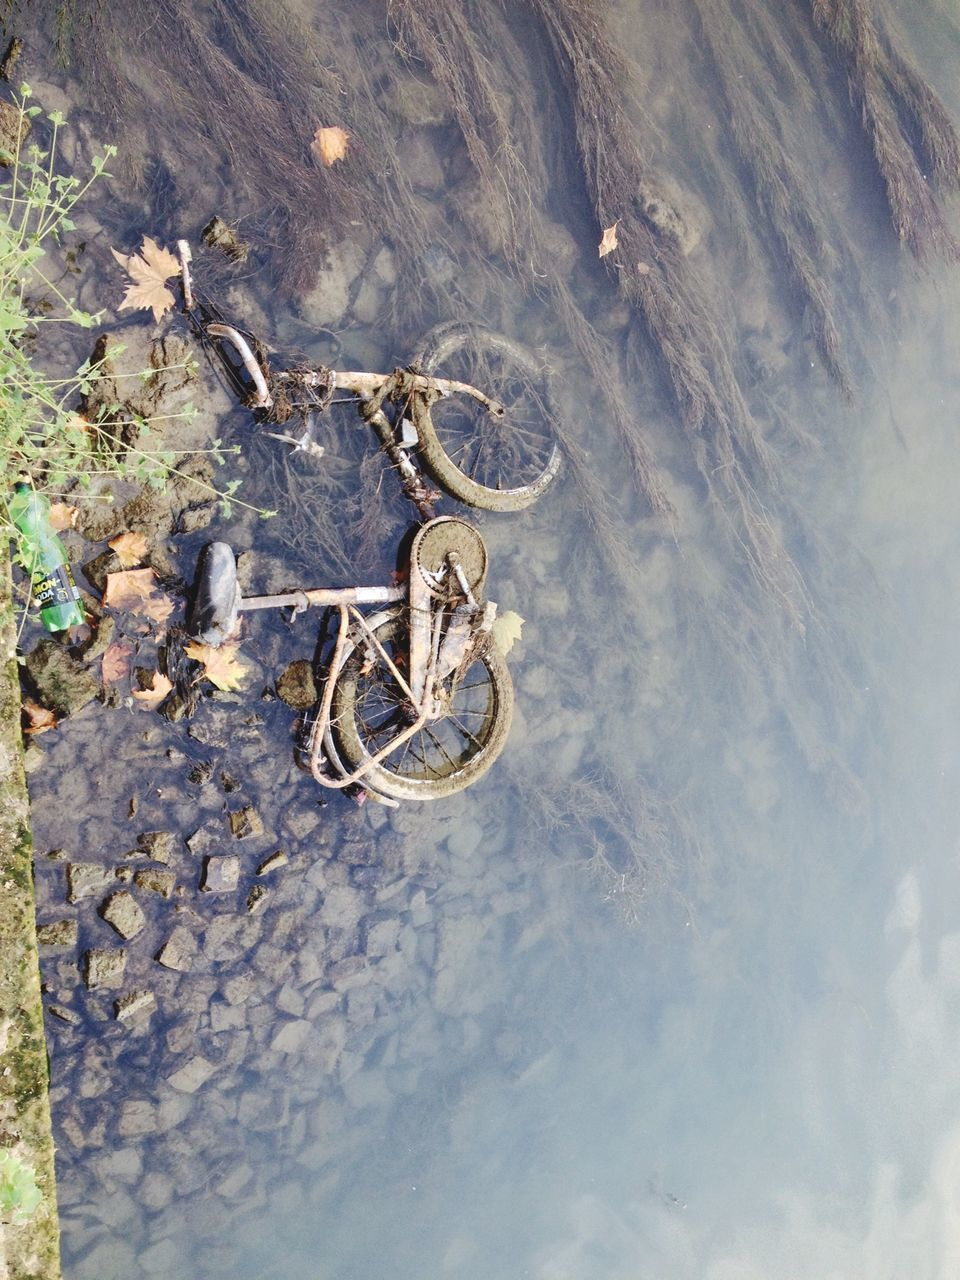 High Angle View Of Abandoned Old Bicycle In Water